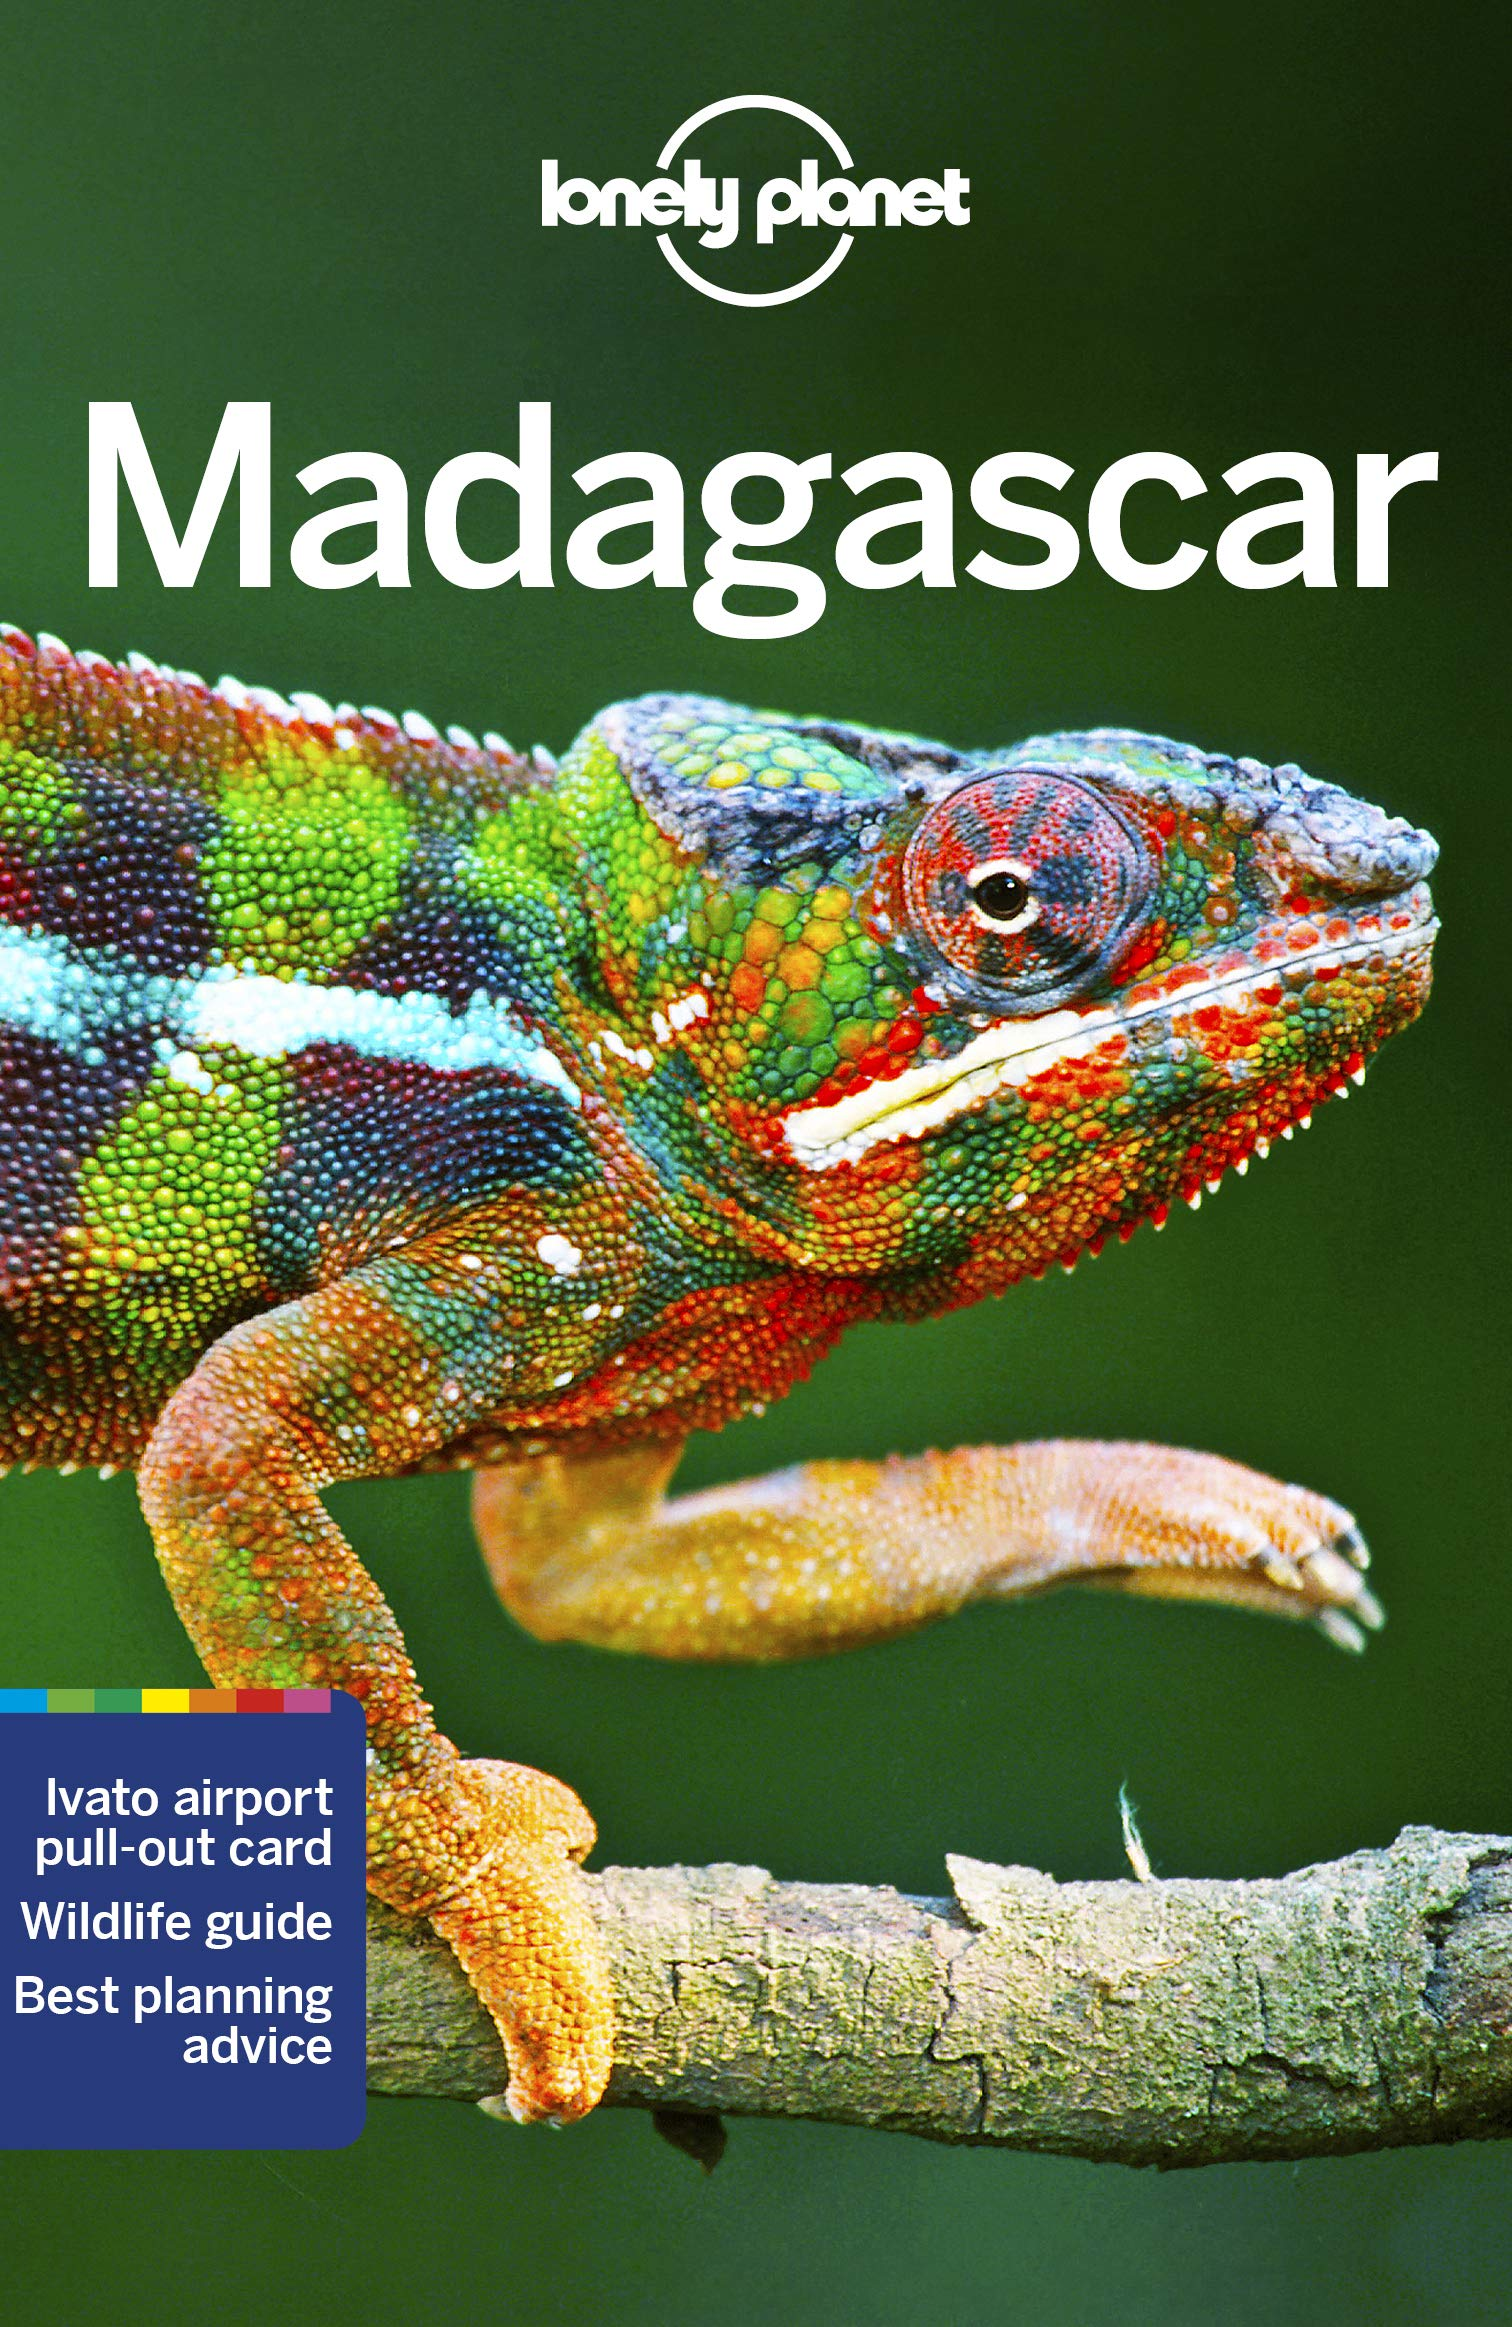 Lonely Planet Madagascar 9781786576026  Lonely Planet Travel Guides  Reisgidsen Madagascar